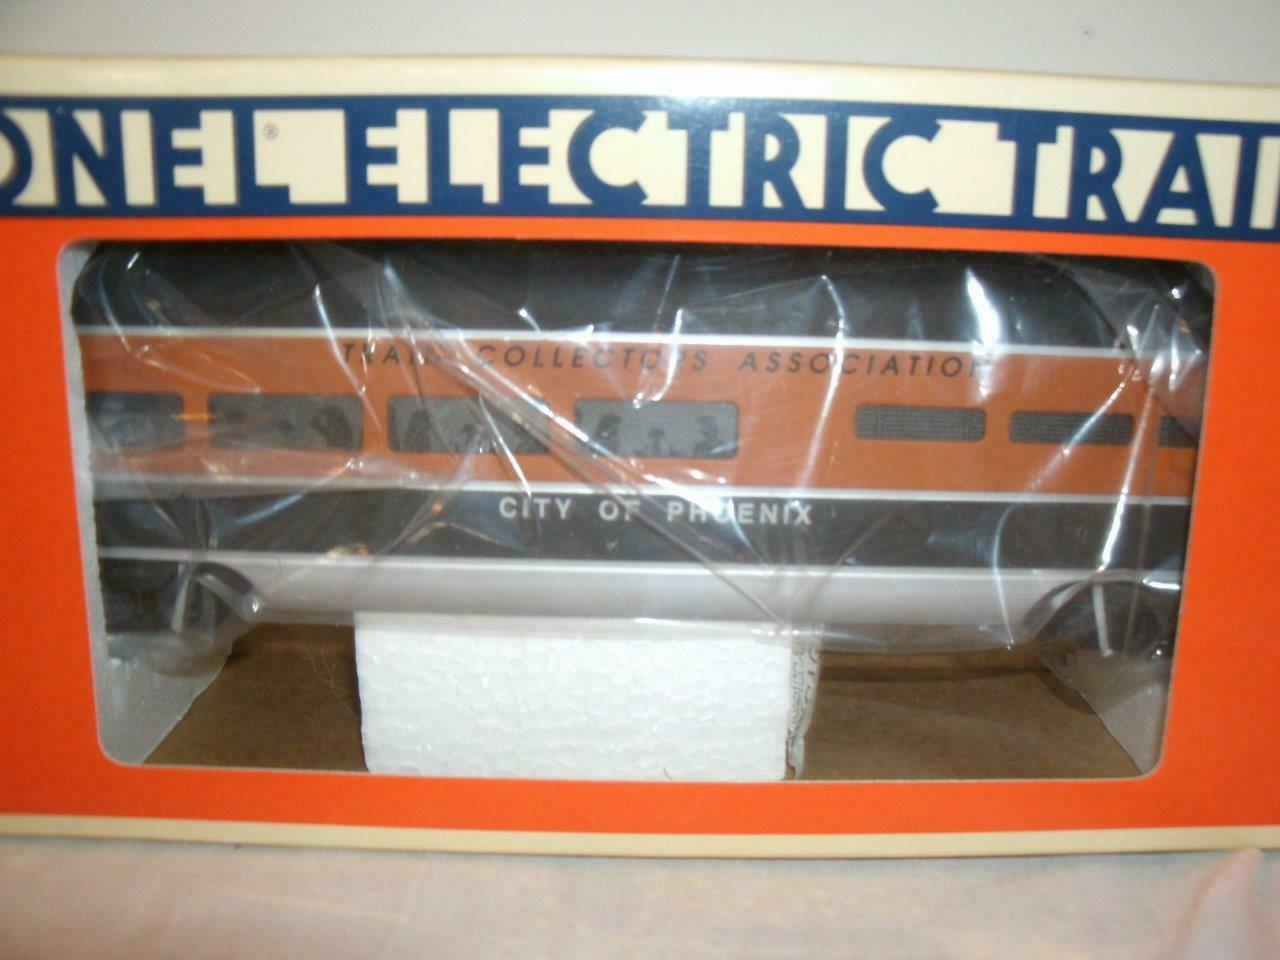 52106 T.C.A. Dining Car-City of Phoenix-Shipping Box included